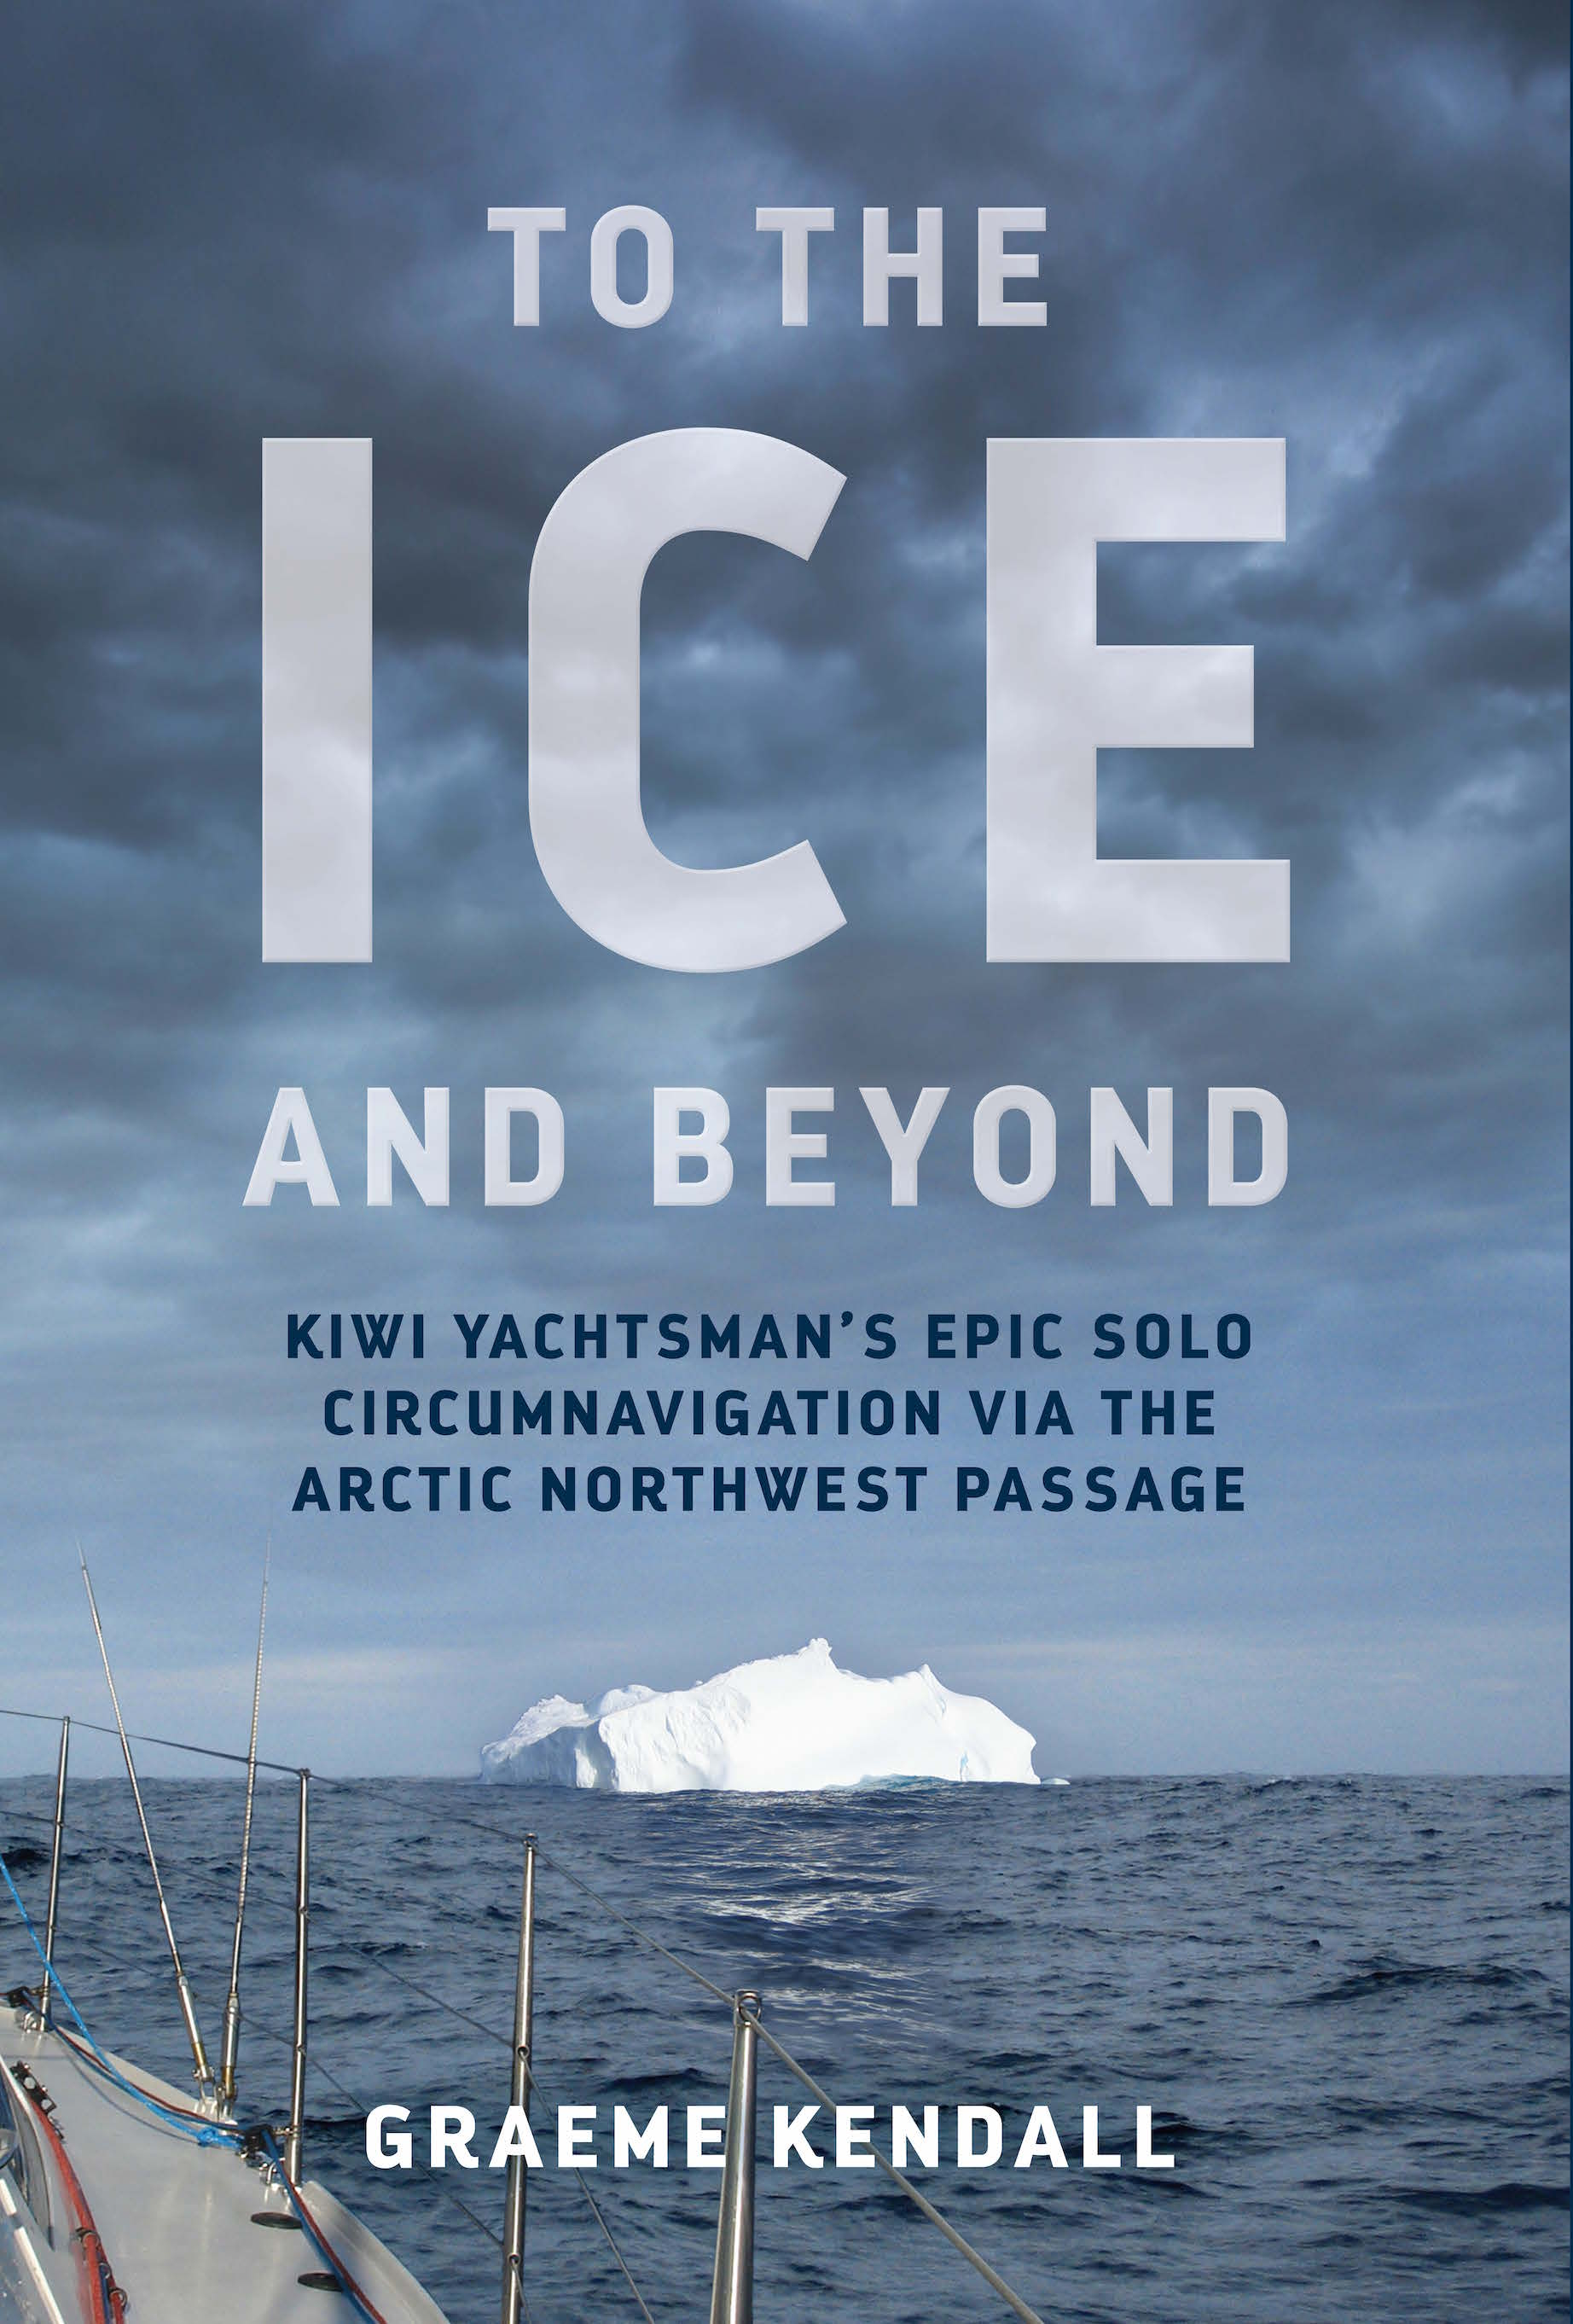 """To the Ice and Beyond, Graeme Kendall  Published by Mary Egan Publishing ISBN:978-0-473-39906-1  Kiwi yachtsman Graeme Kendall was the first person to sail the Northwest Passage solo non-stop. Sailing east to west, he knocked off the """"Everest of sailing"""" in just 12 days – the fastest recorded – as part of his extraordinary solo circumnavigation of the globe. This is a story of determination, meticulous planning and rugged courage."""